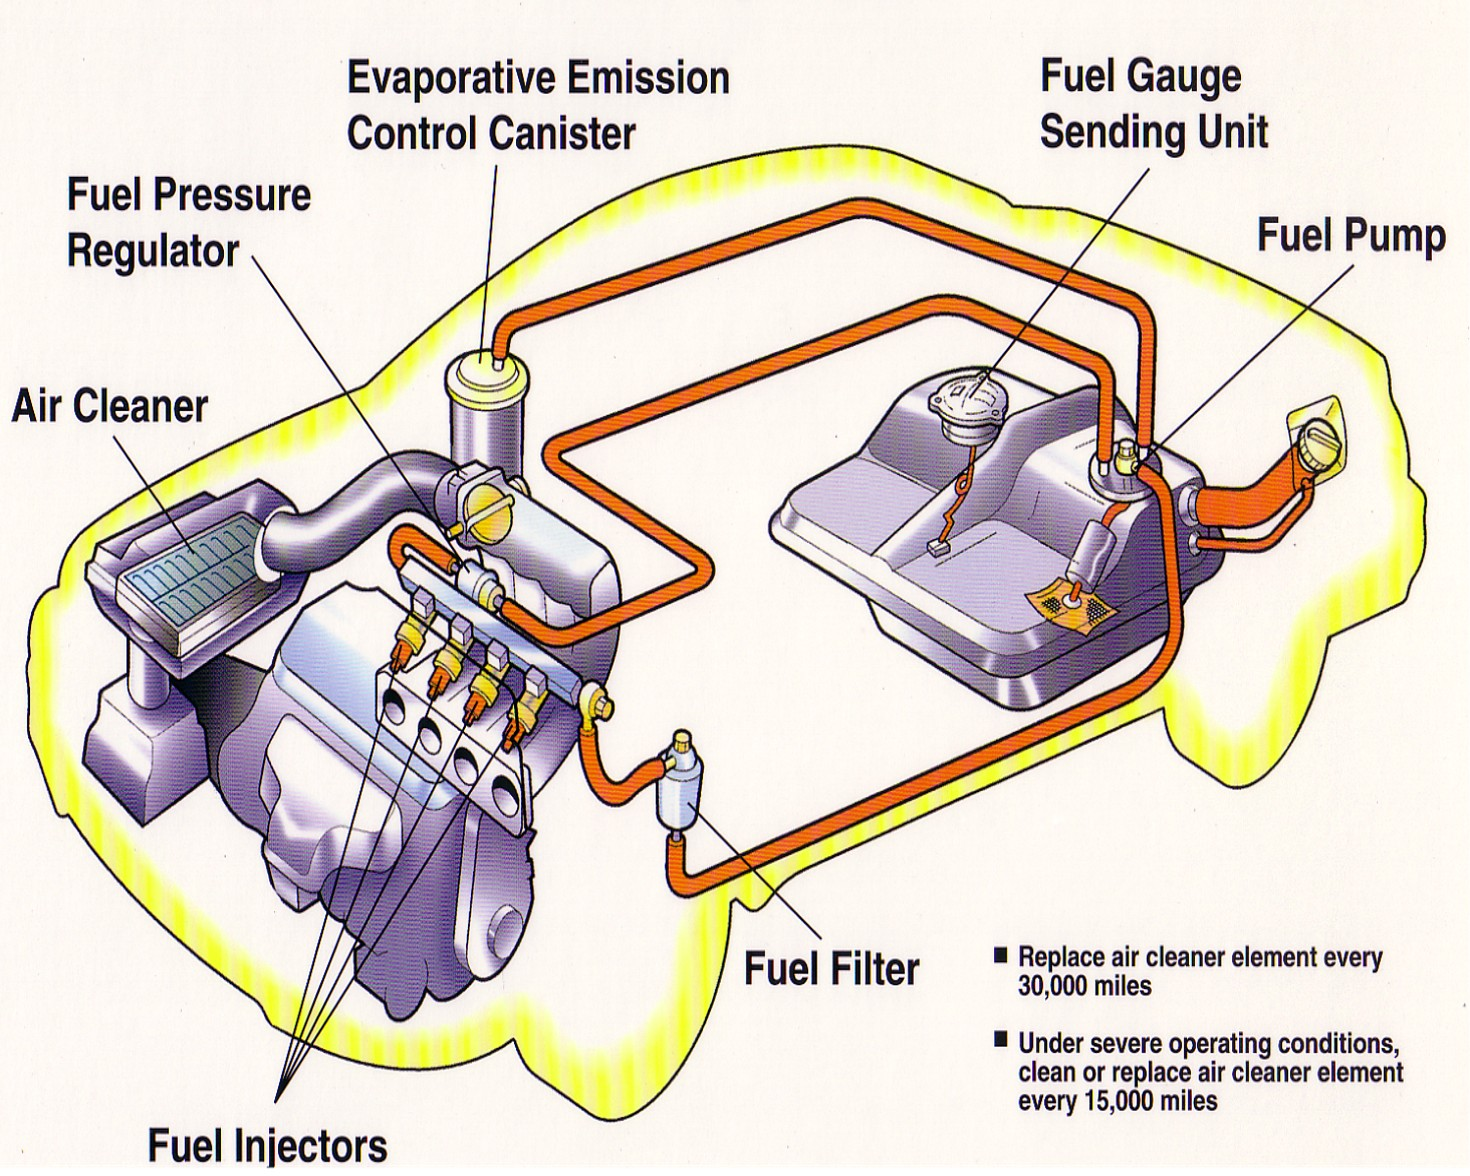 fuel injection engine diagram ford fuel injection wiring diagram technology: fuel injection system #3